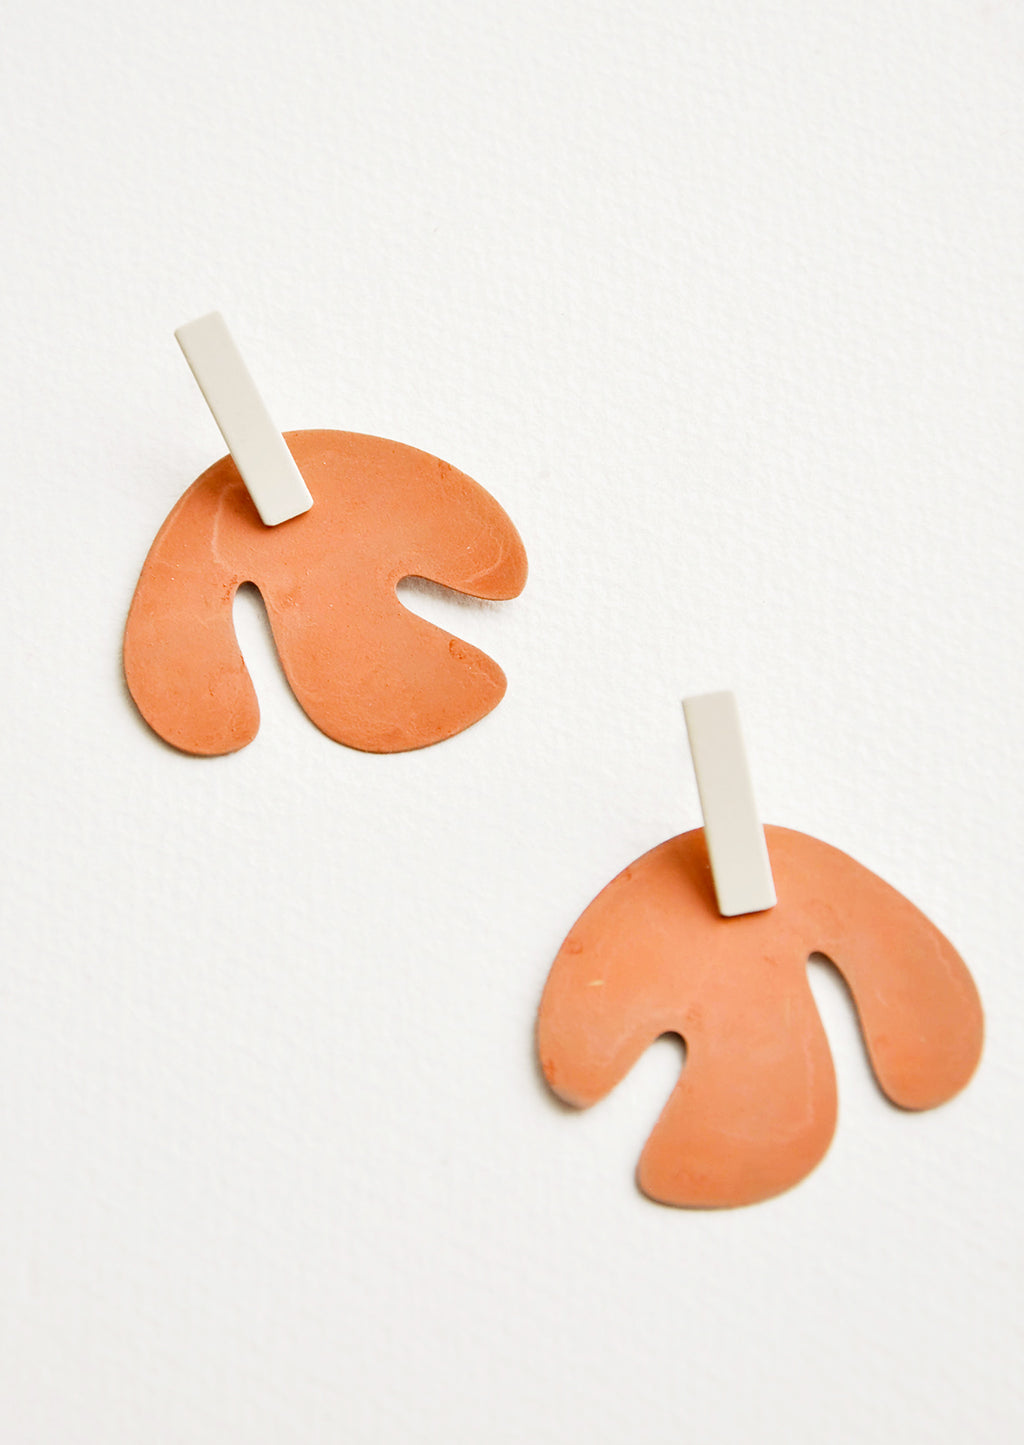 Dark Peach / Cream: Post earrings with orange asymmetric leaf shape hanging from small silver rectangle.